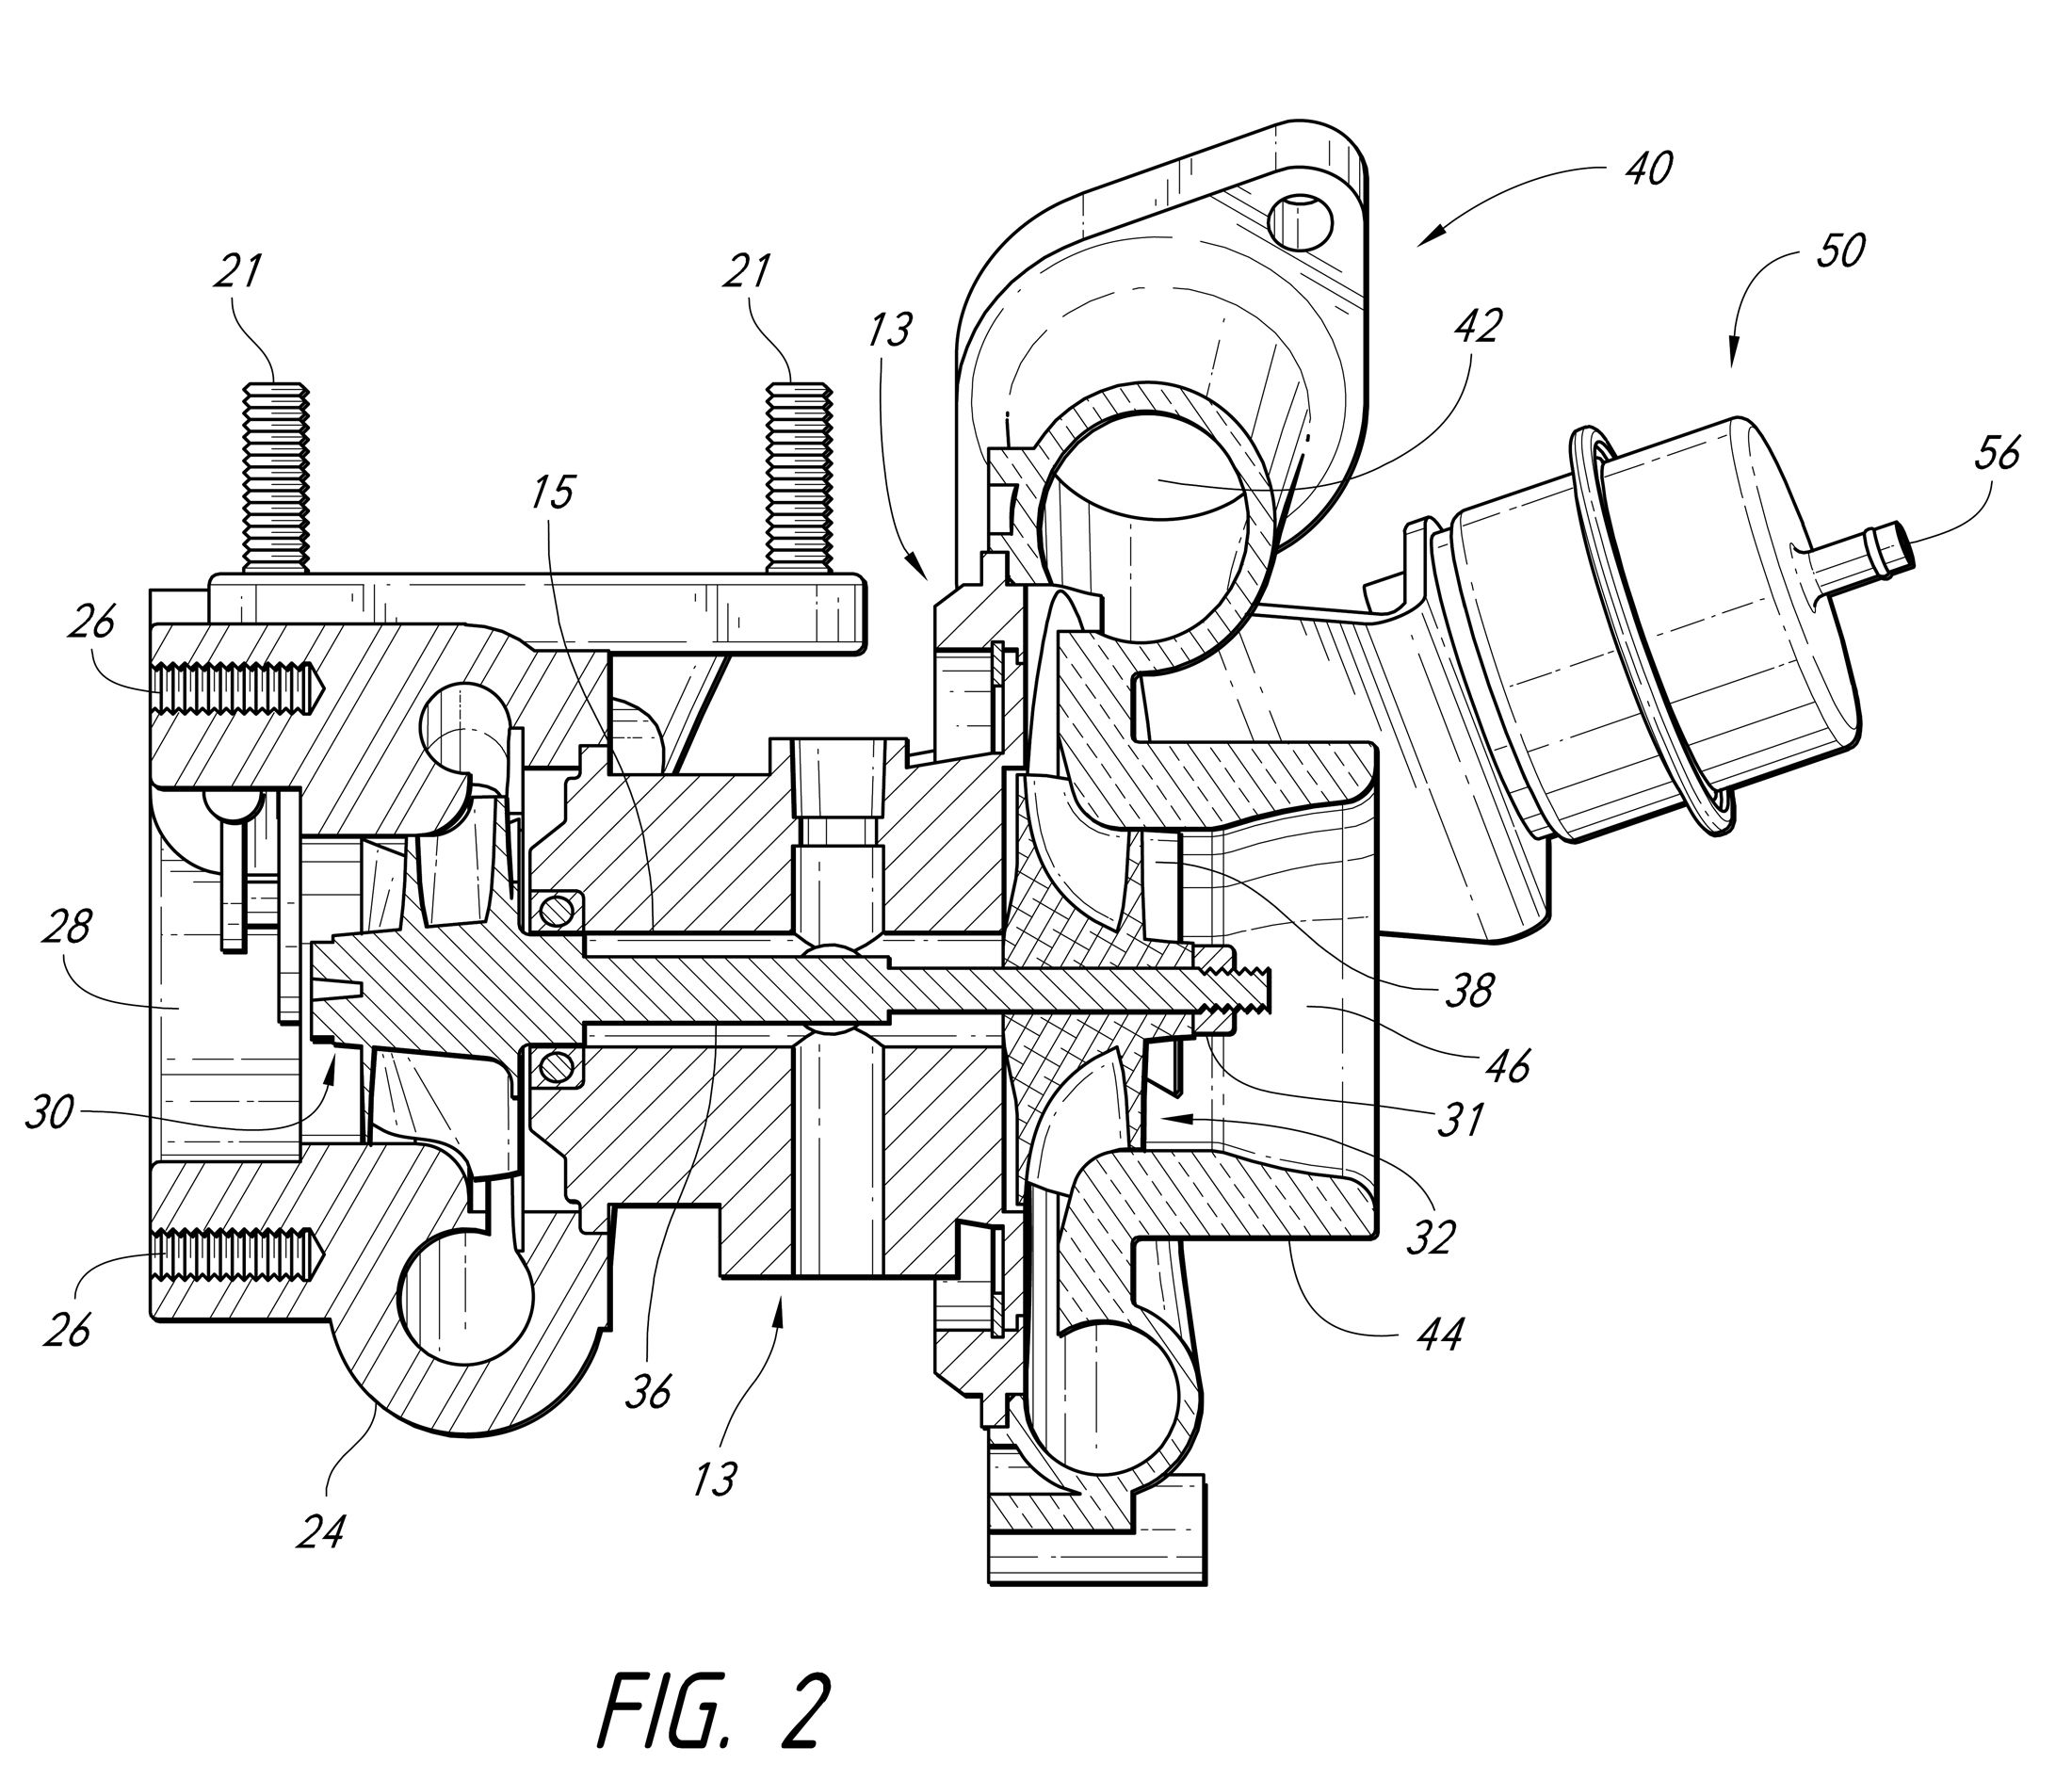 image stock Ql n ew spare. Turbocharger drawing.